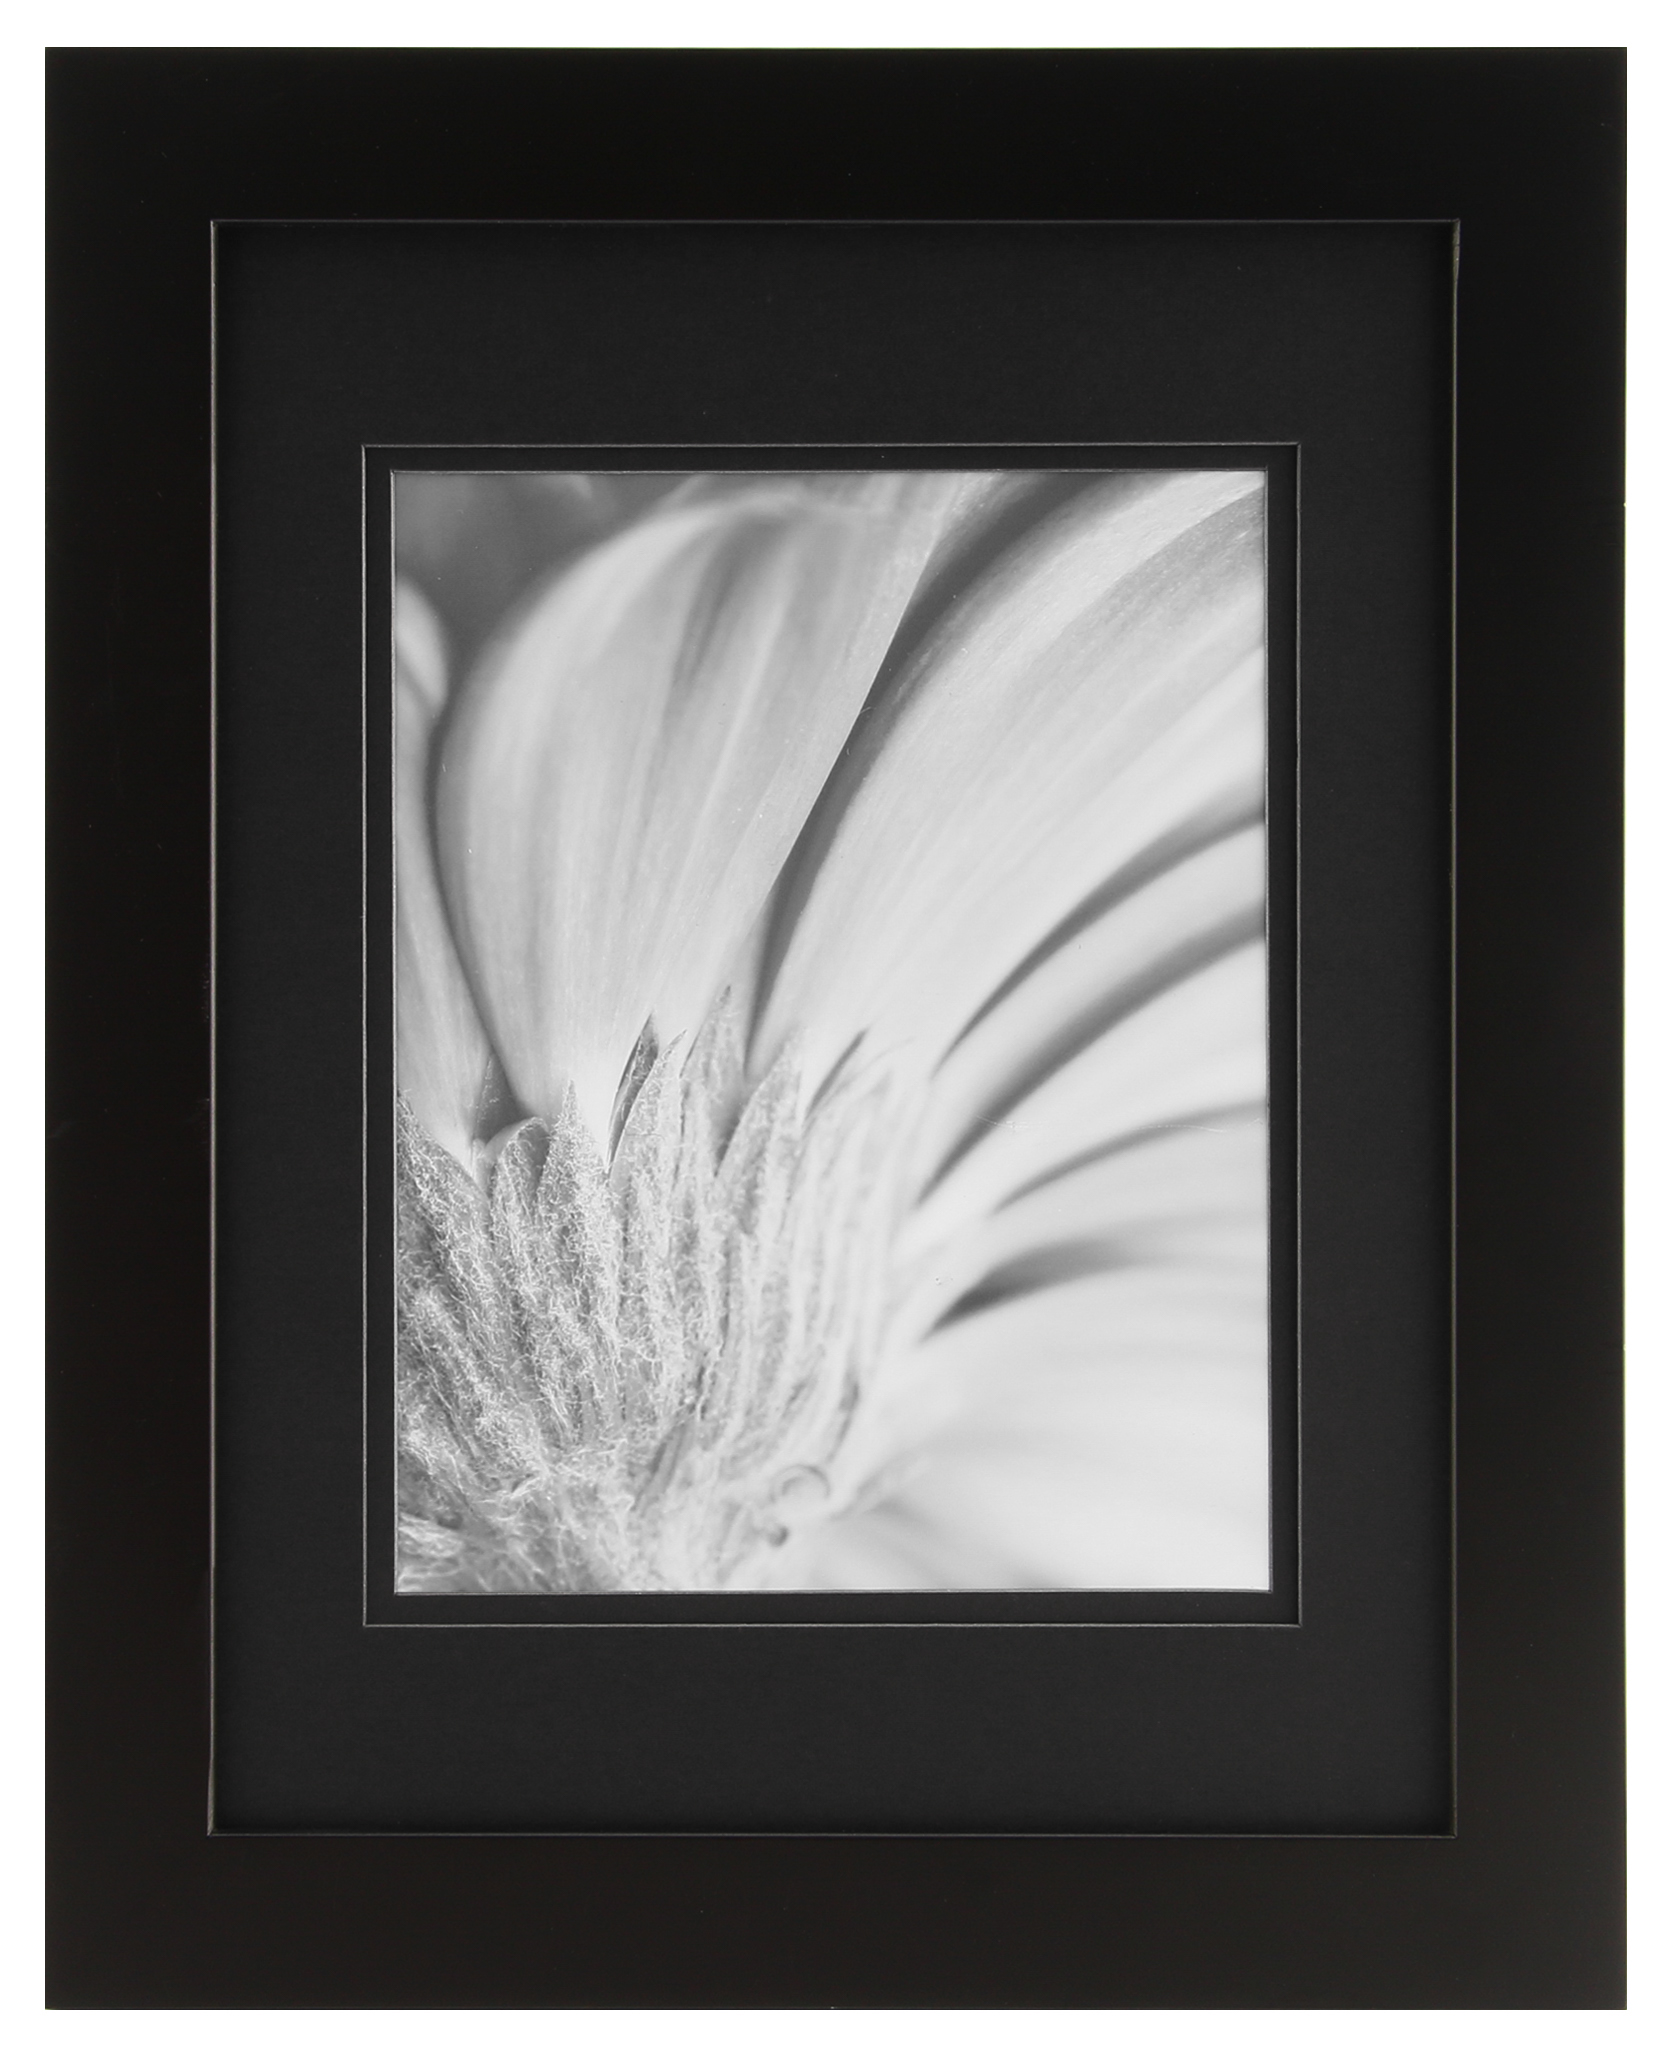 Solutions 11x14 Black Frame Matted 8x10